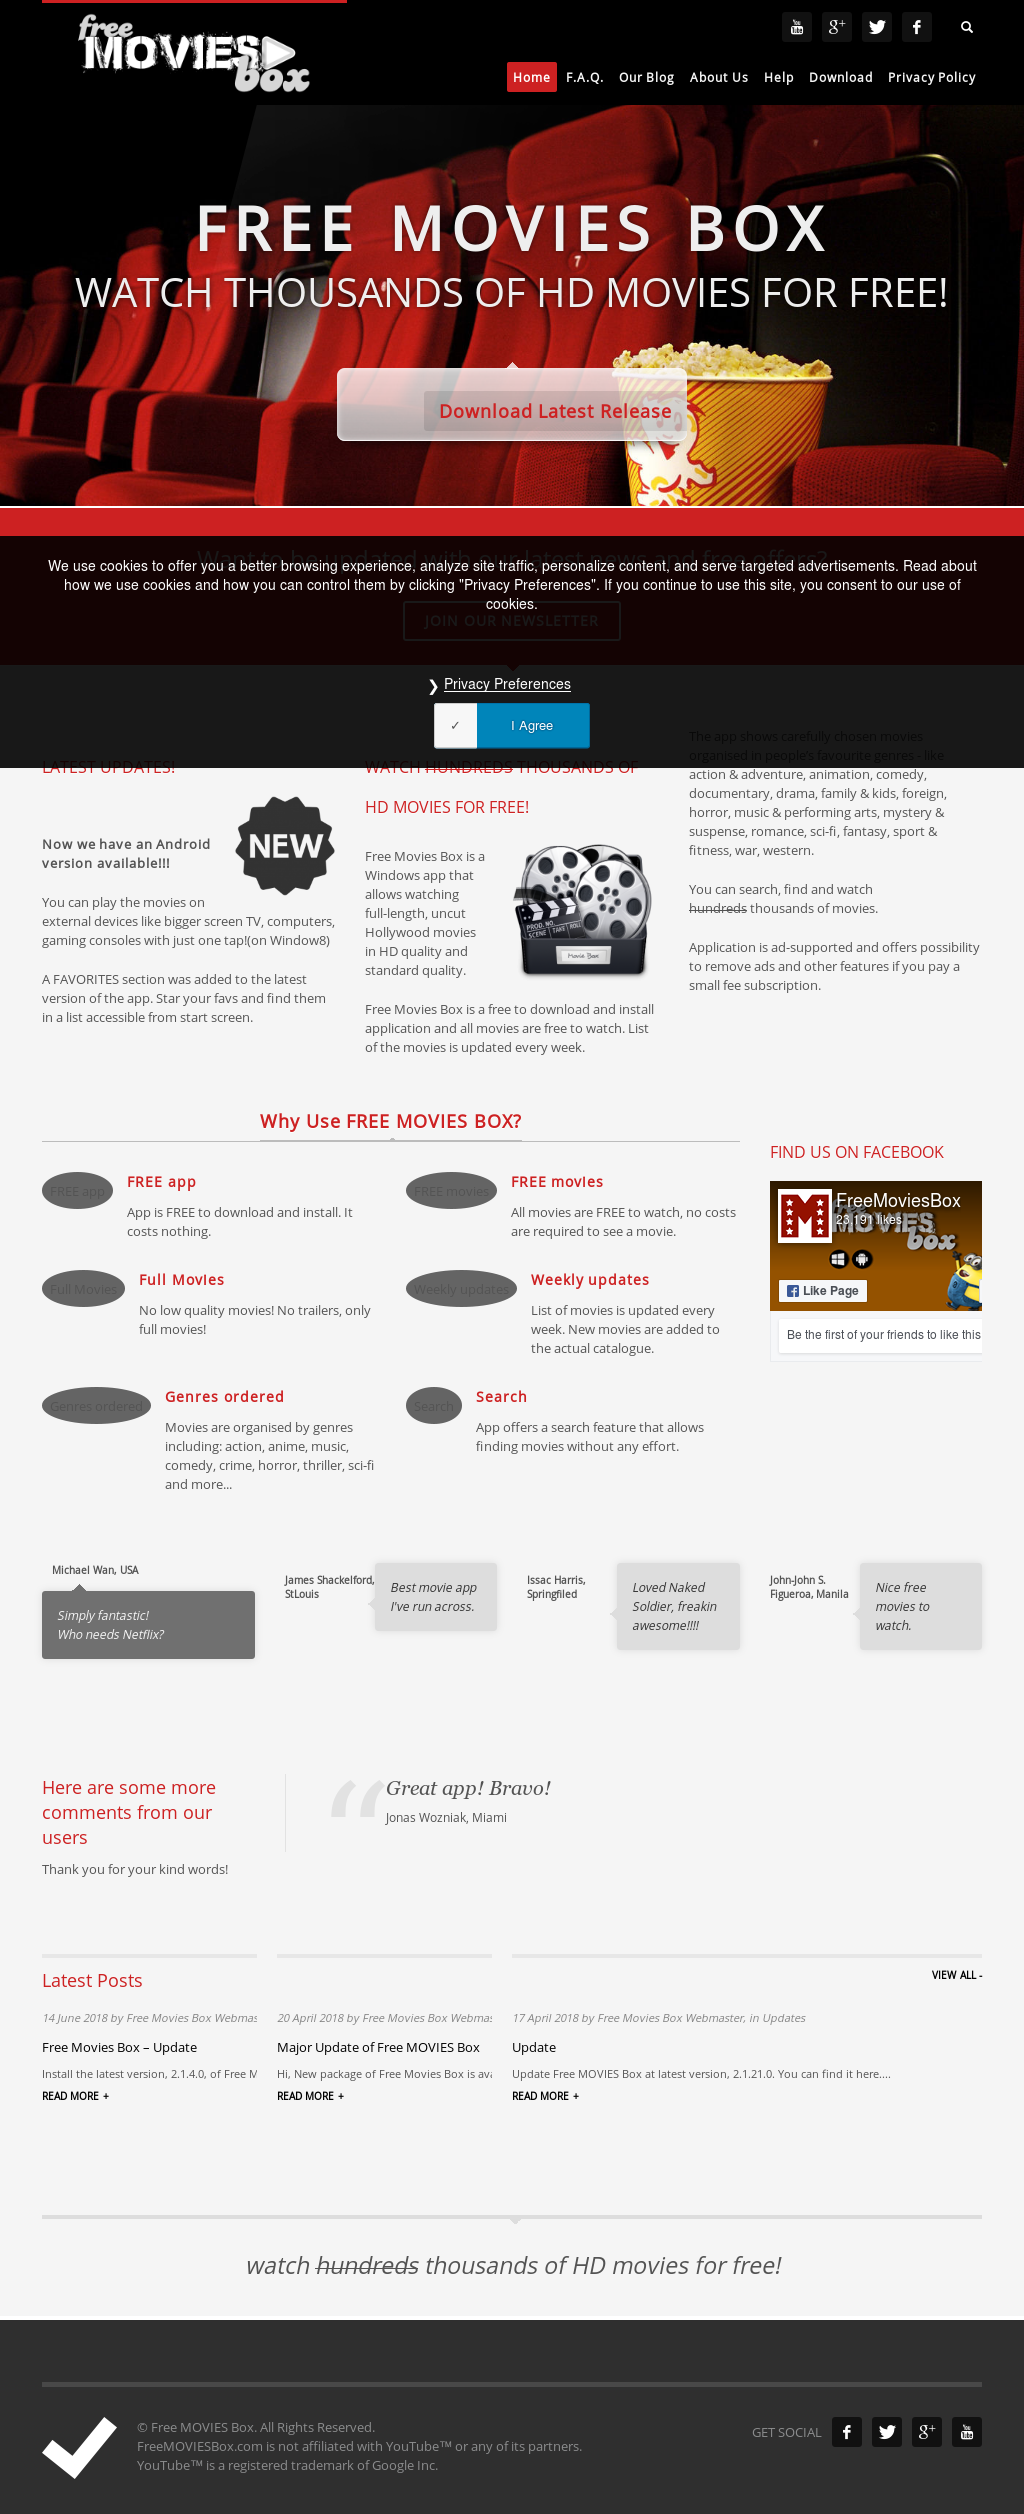 Freemoviesbox Competitors, Revenue and Employees - Owler Company Profile